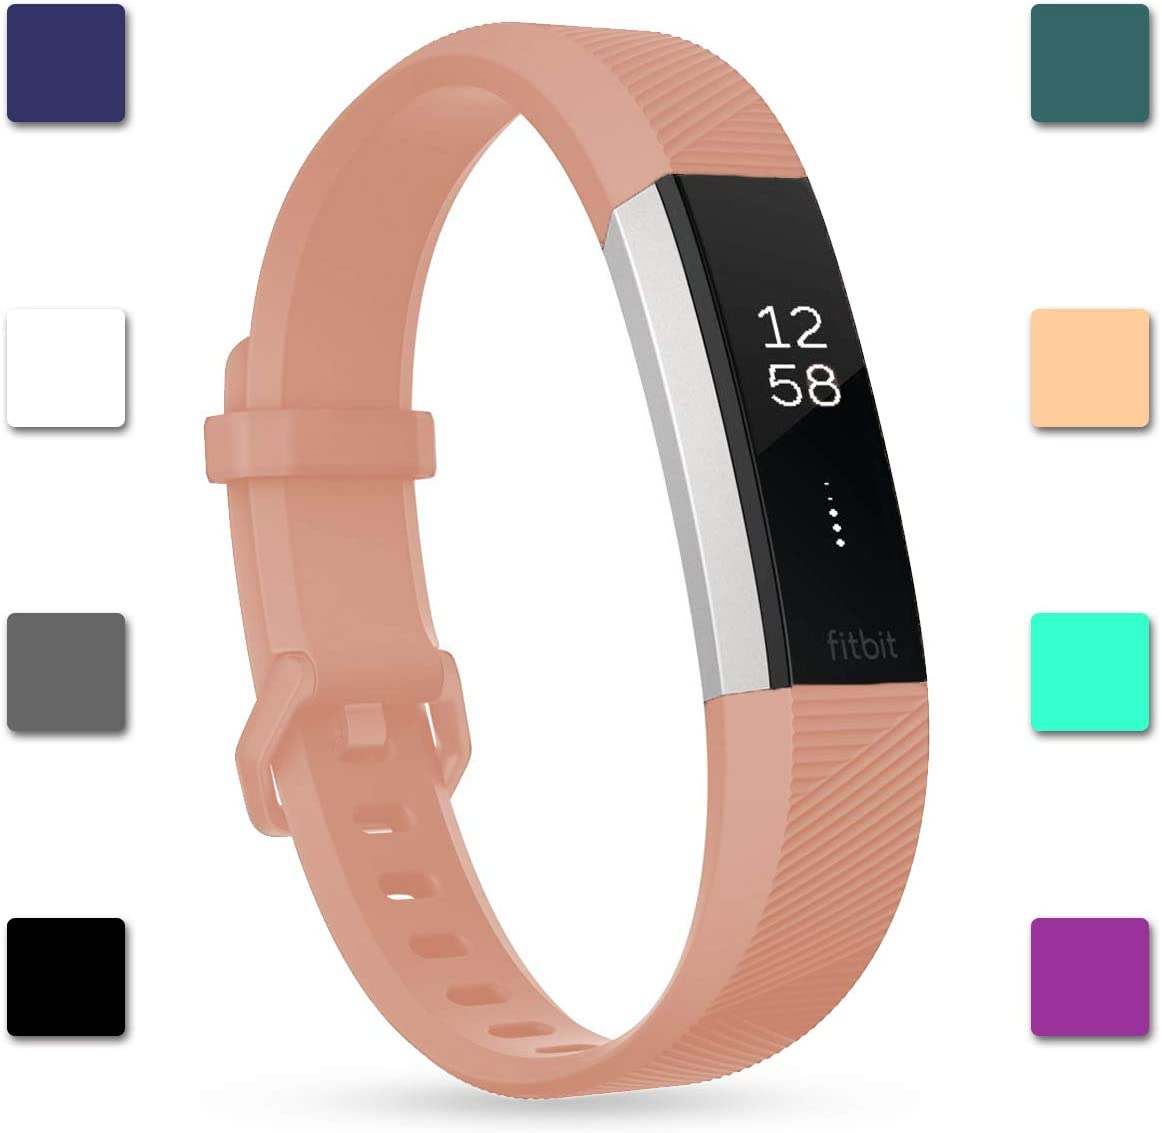 HR Ace Band Replacement Silicone Secure Strap Wristband S L For Fitbit Alta